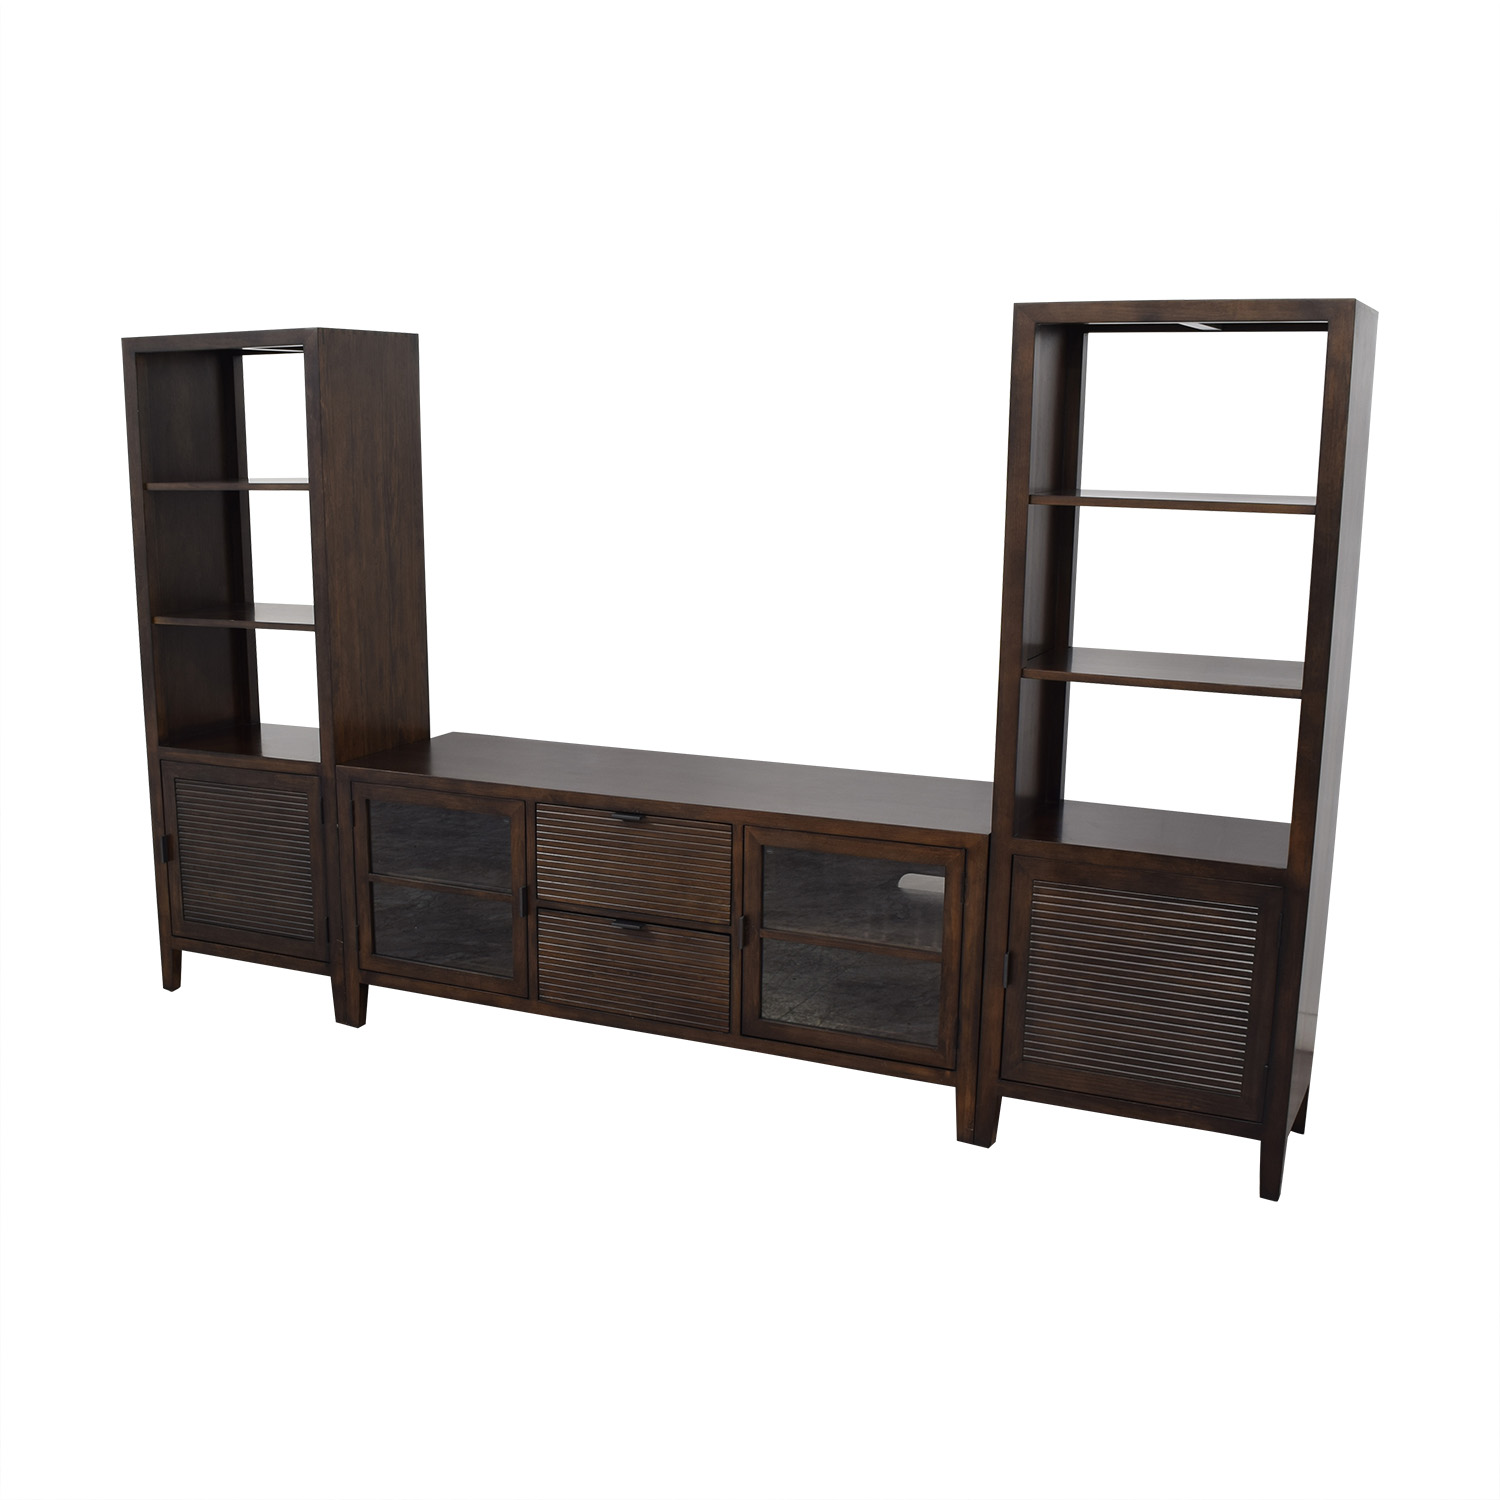 Crate & Barrel Crate & Barrel Media Console with Two Media Towers on sale